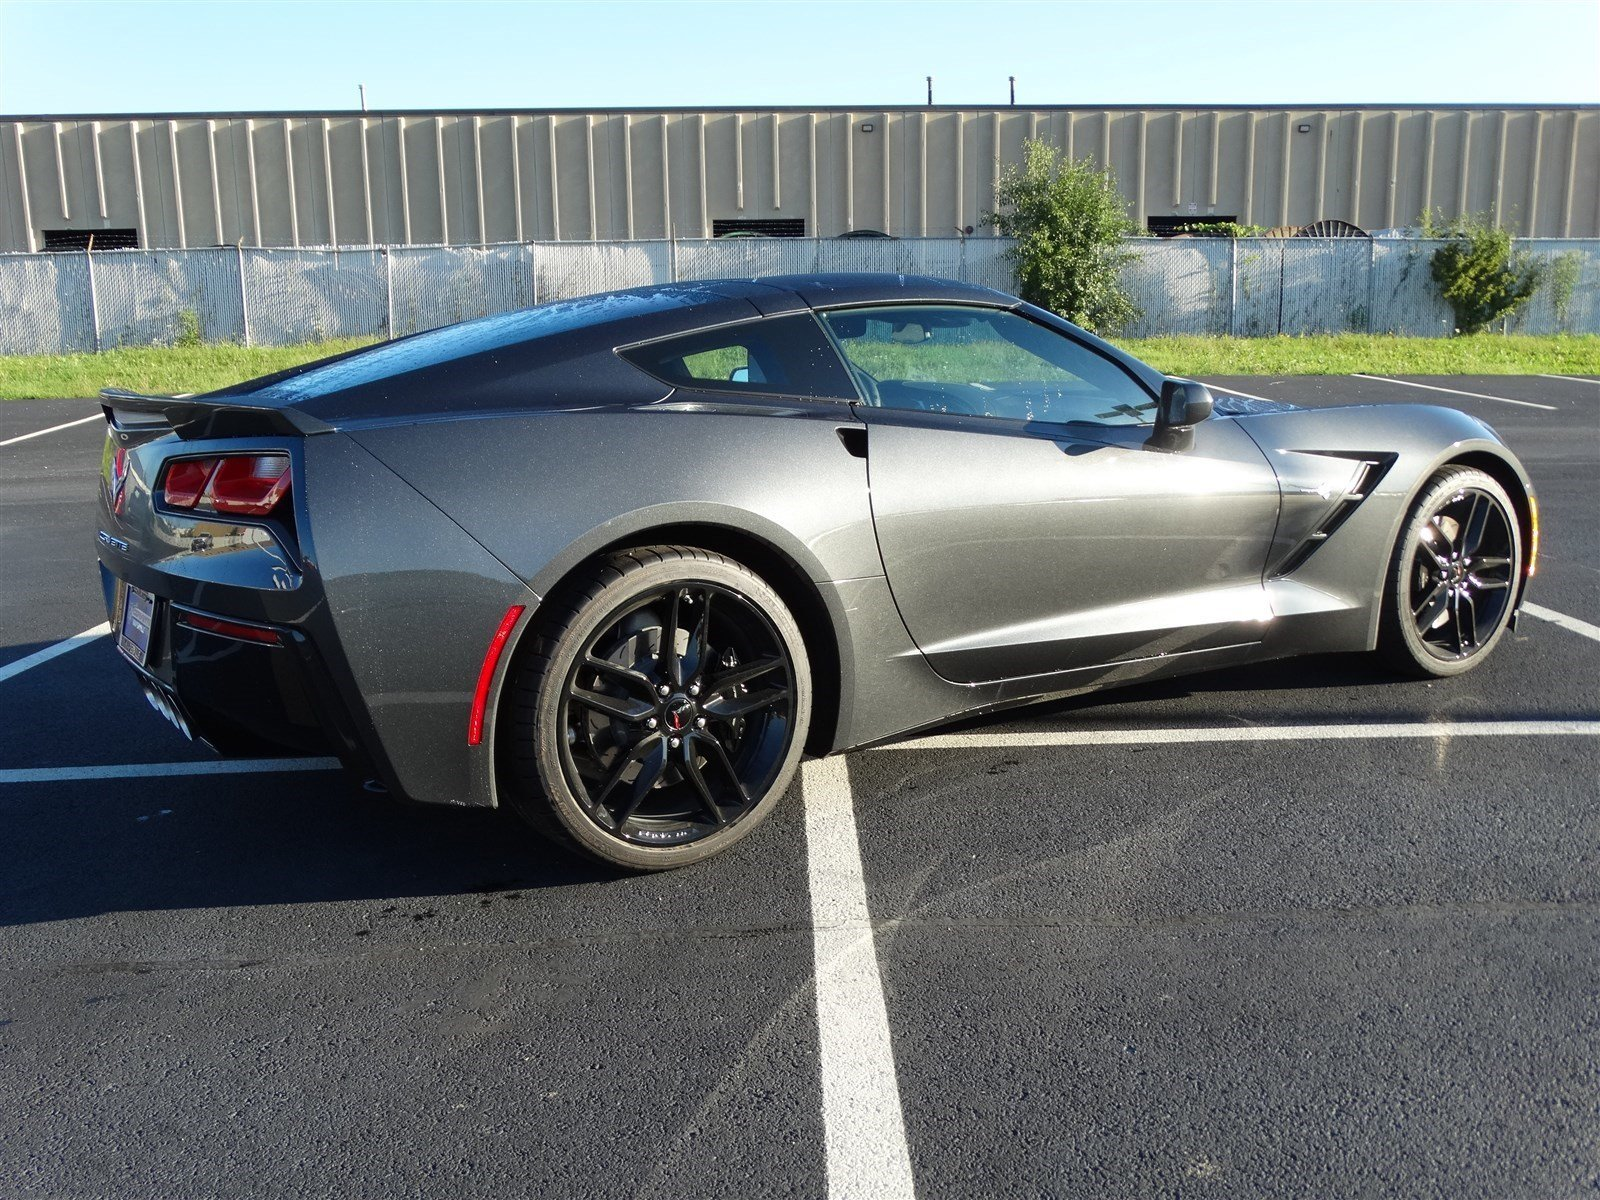 new 2017 chevrolet corvette 2lt coupe w z51 8 spd auto black rims removable roof 460hp. Black Bedroom Furniture Sets. Home Design Ideas